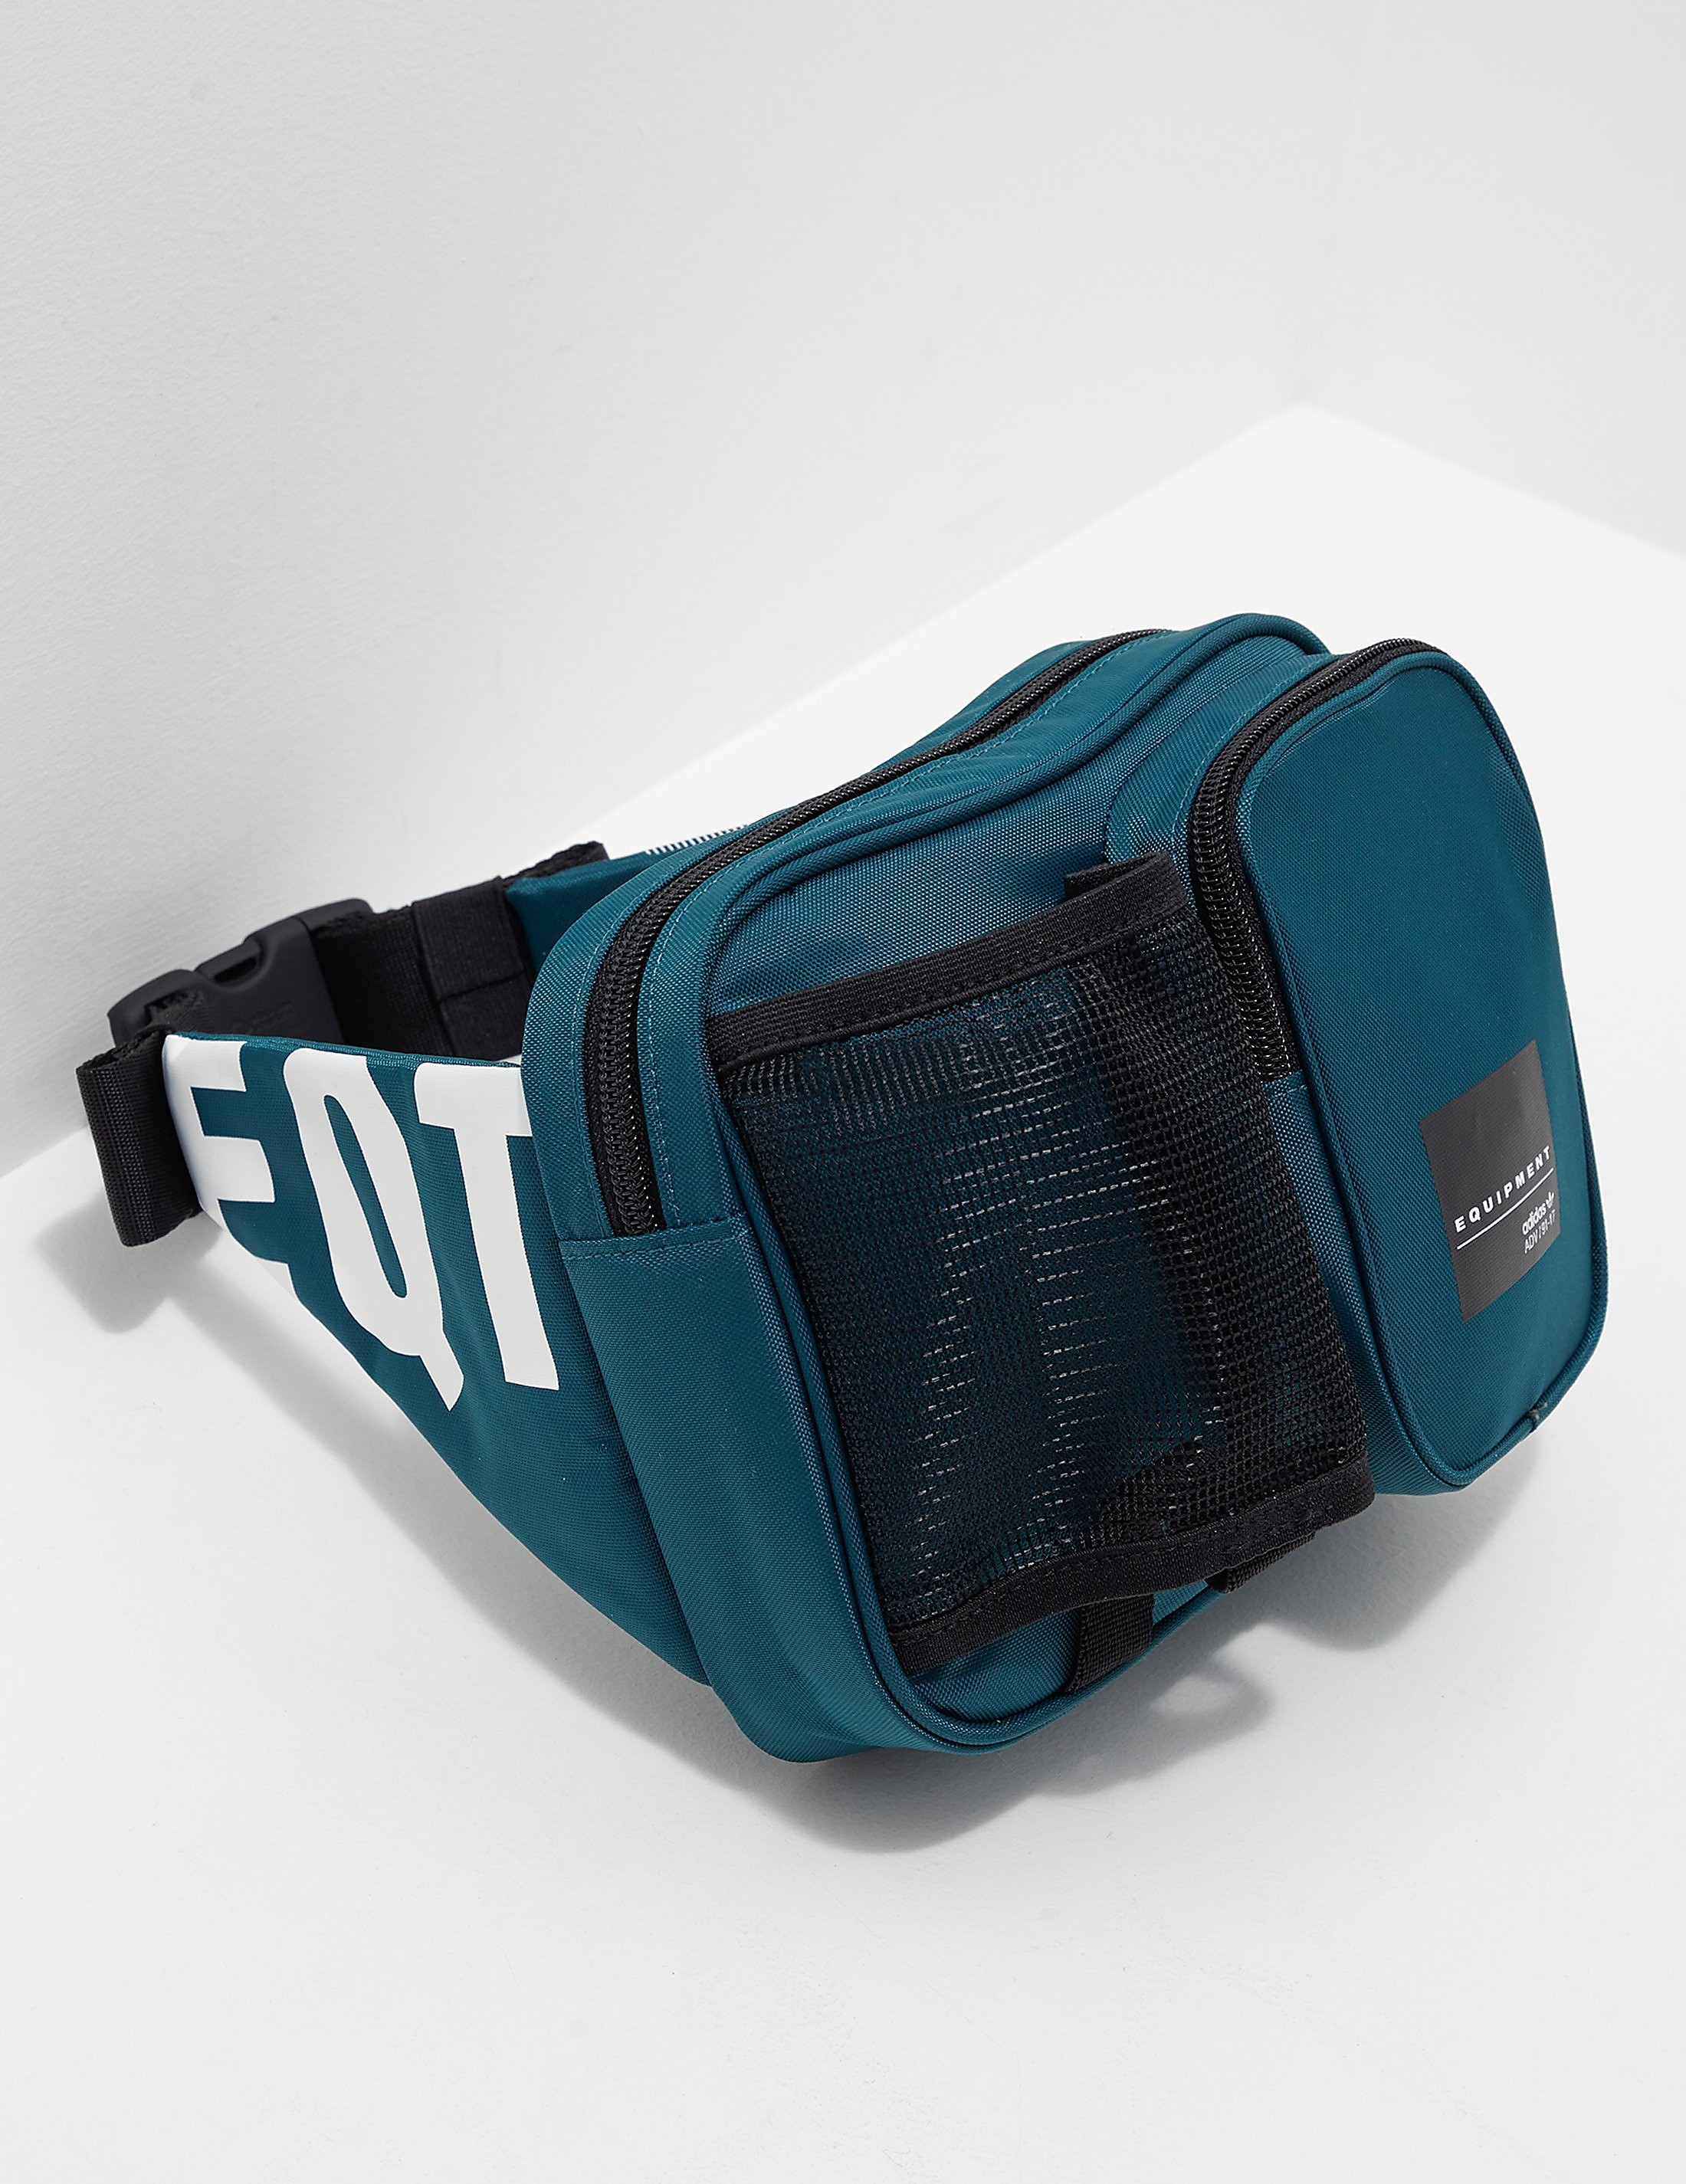 adidas Originals EQT Side Bag